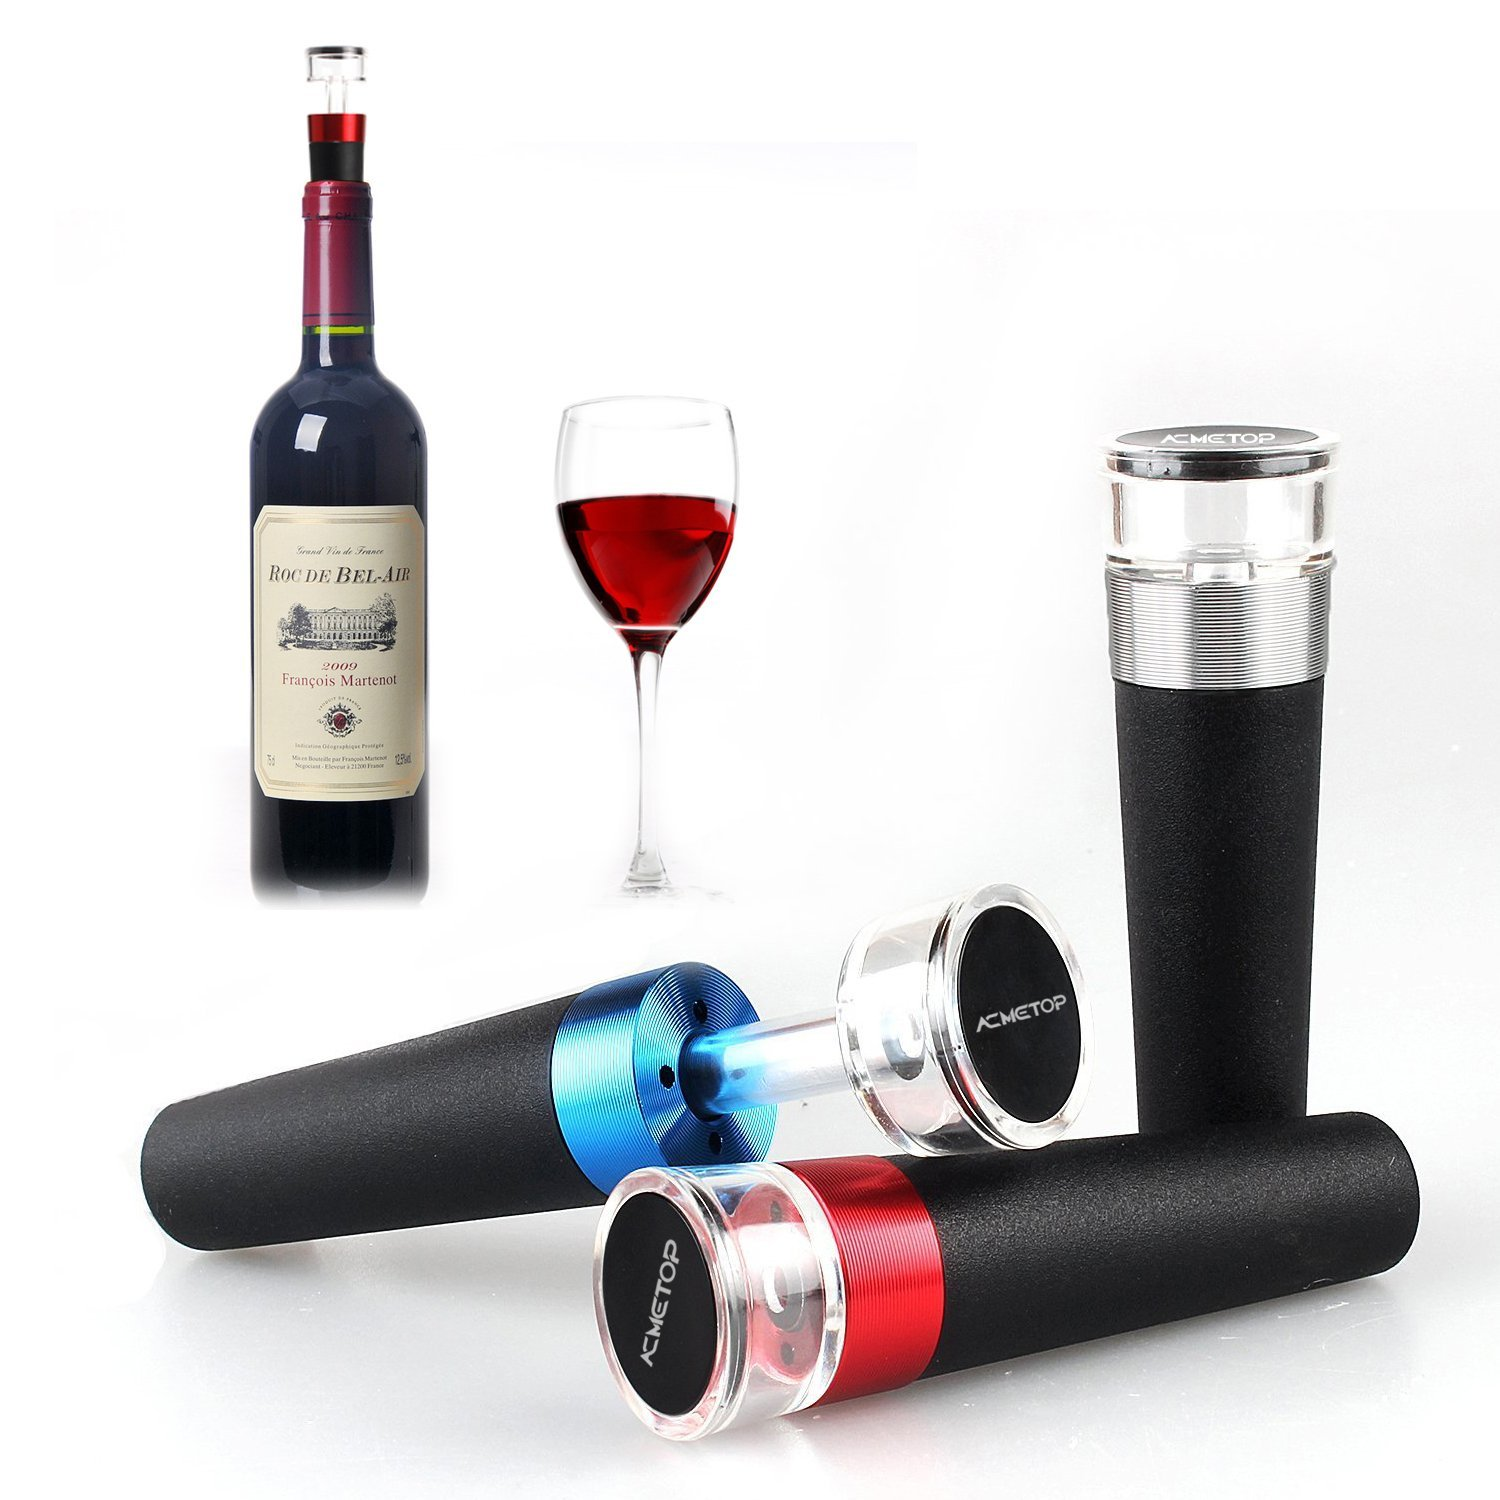 ACMETOP Wine Saver-Wine Stopper Vacuum set with 3 wine Bottle Stoppers-Wine Preserver Vacuum Pump and Rubber Wine Stopper Set To Preserve Wine Flavor and Fresh for 7-10 days